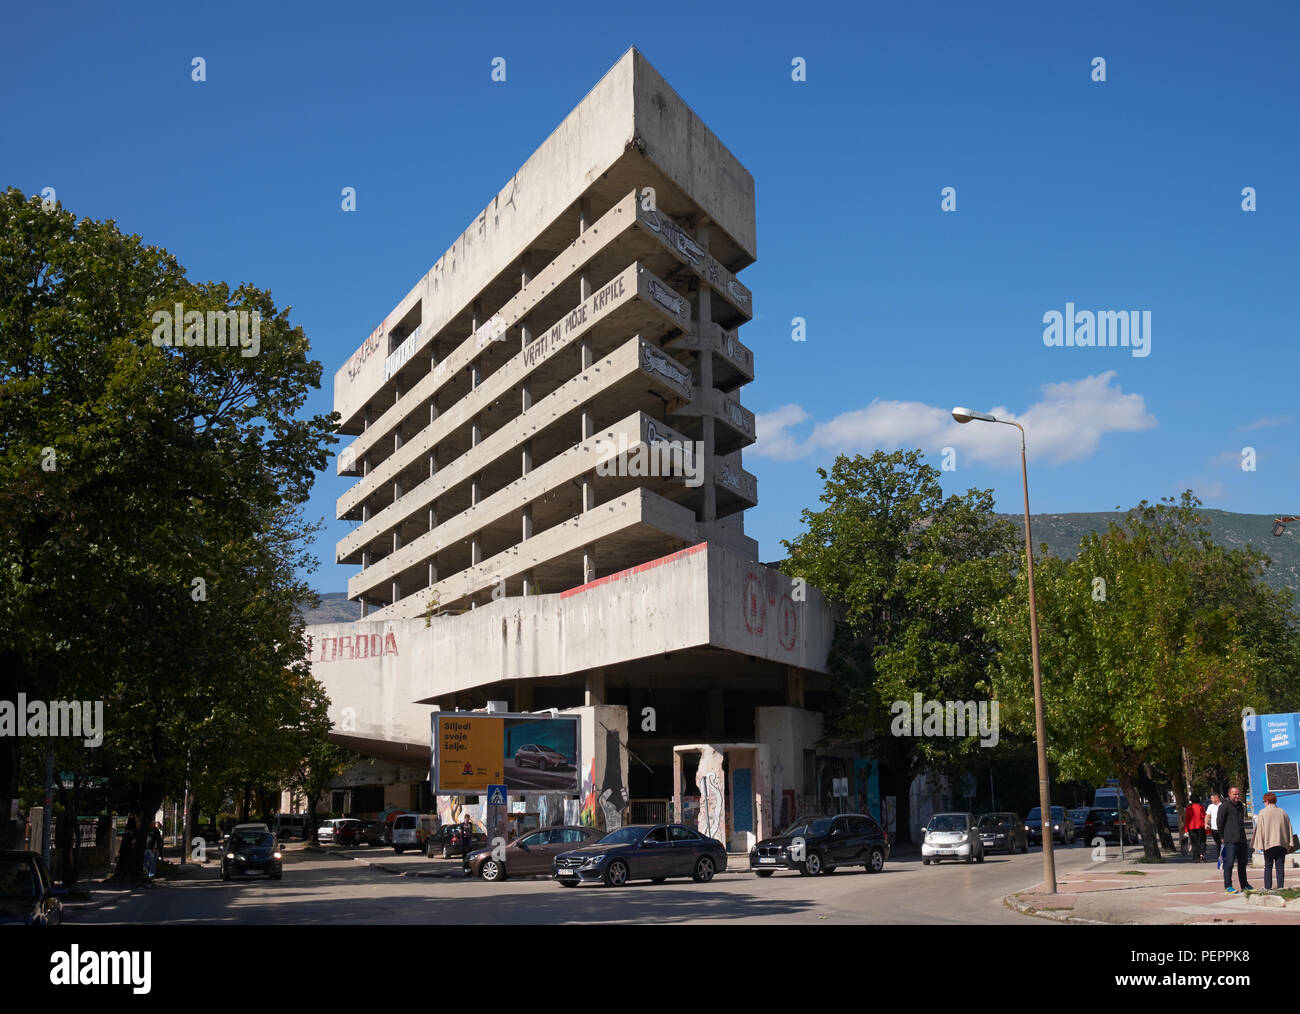 The derelict former Ljubljanska Bank in Mostar, Bosnia and Herzegovina, has been called the 'Sniper Tower' since the Balkans War in the 1990s. - Stock Image